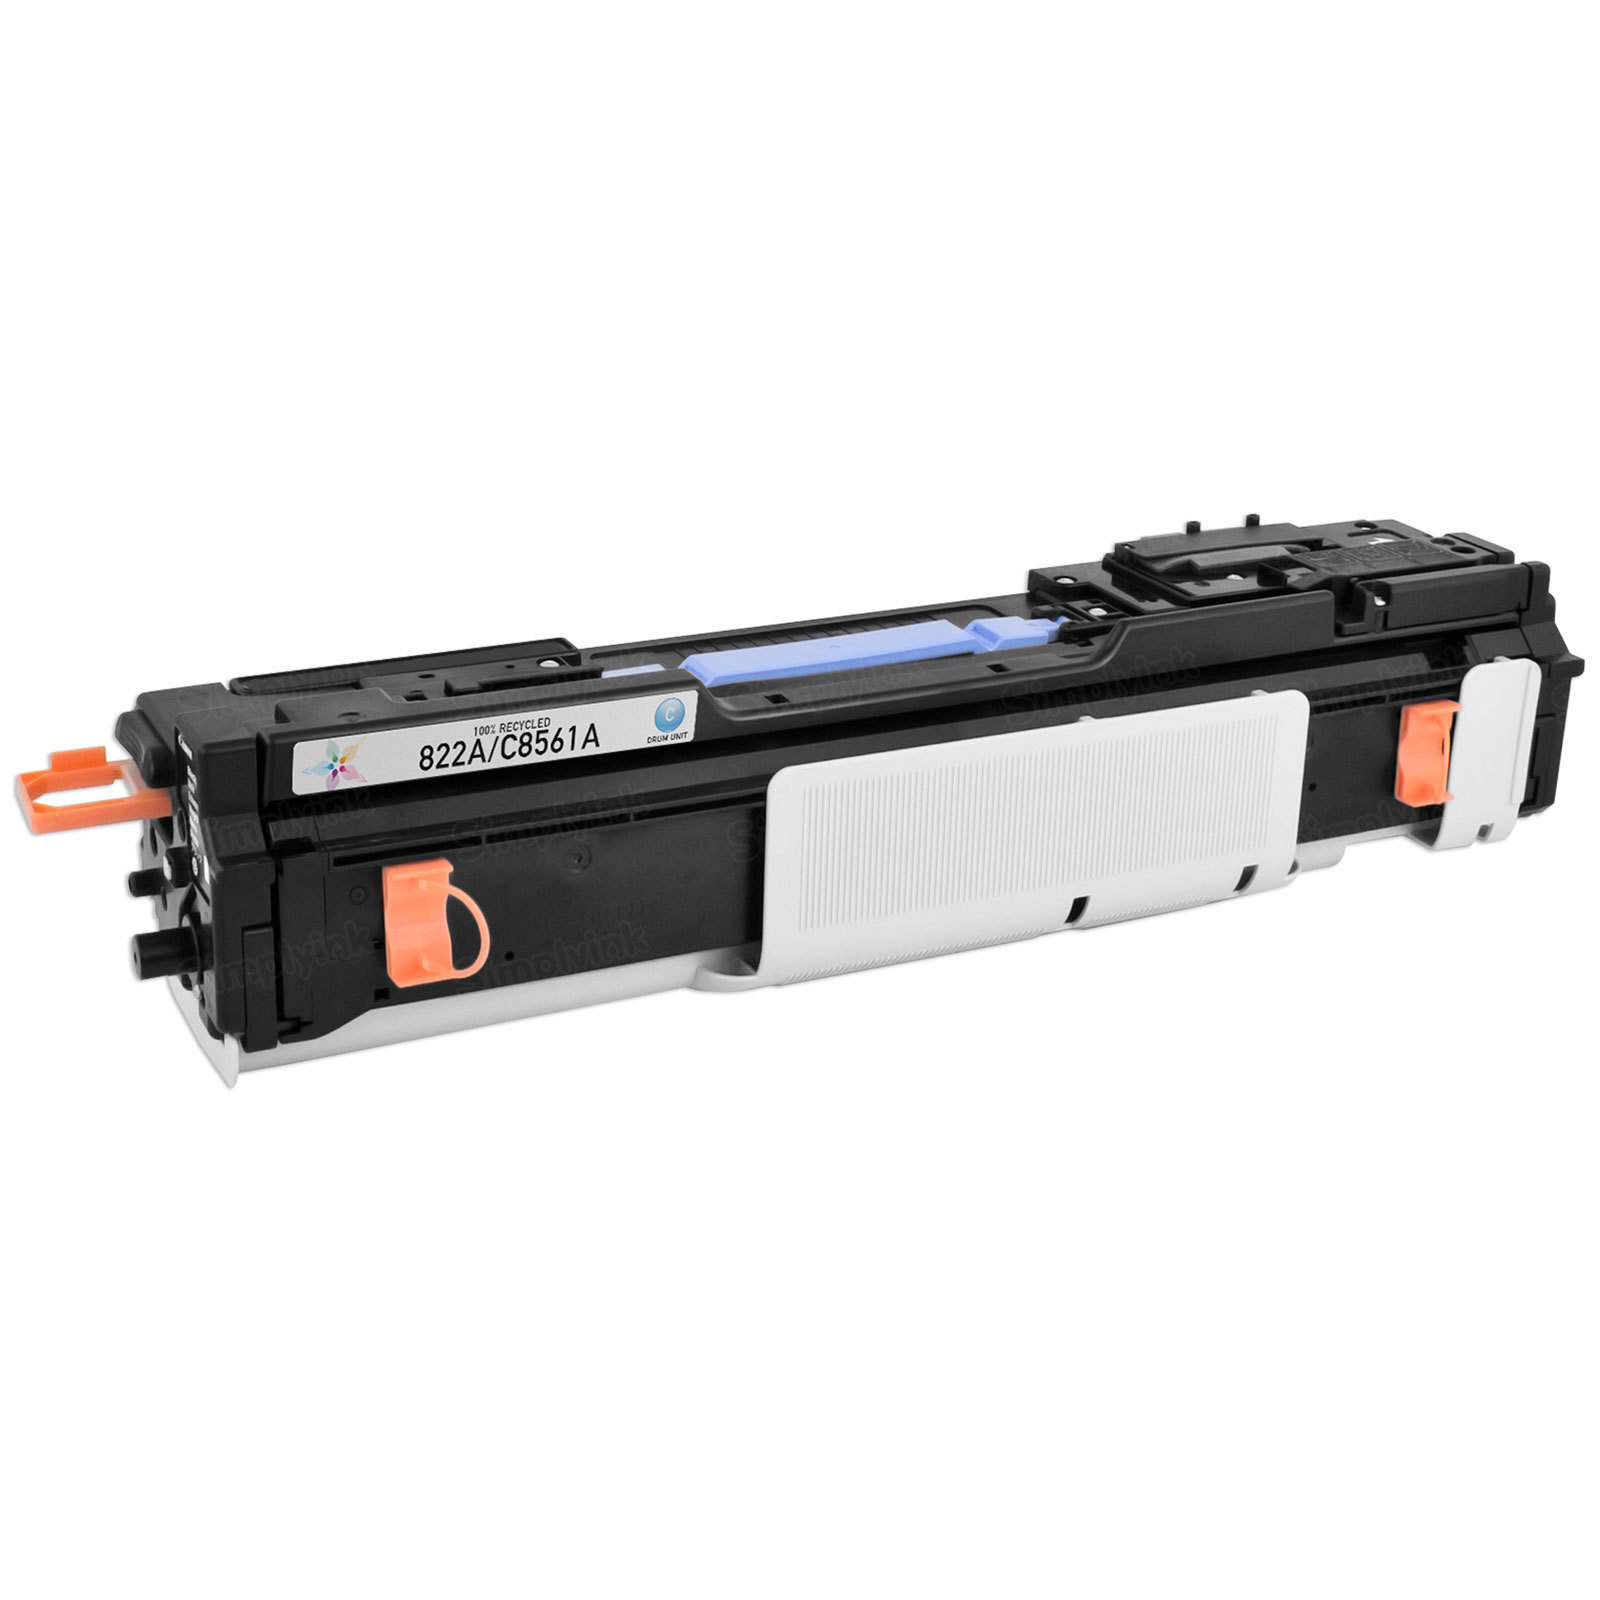 Remanufactured Replacement Cyan Laser Drum for HP 822A